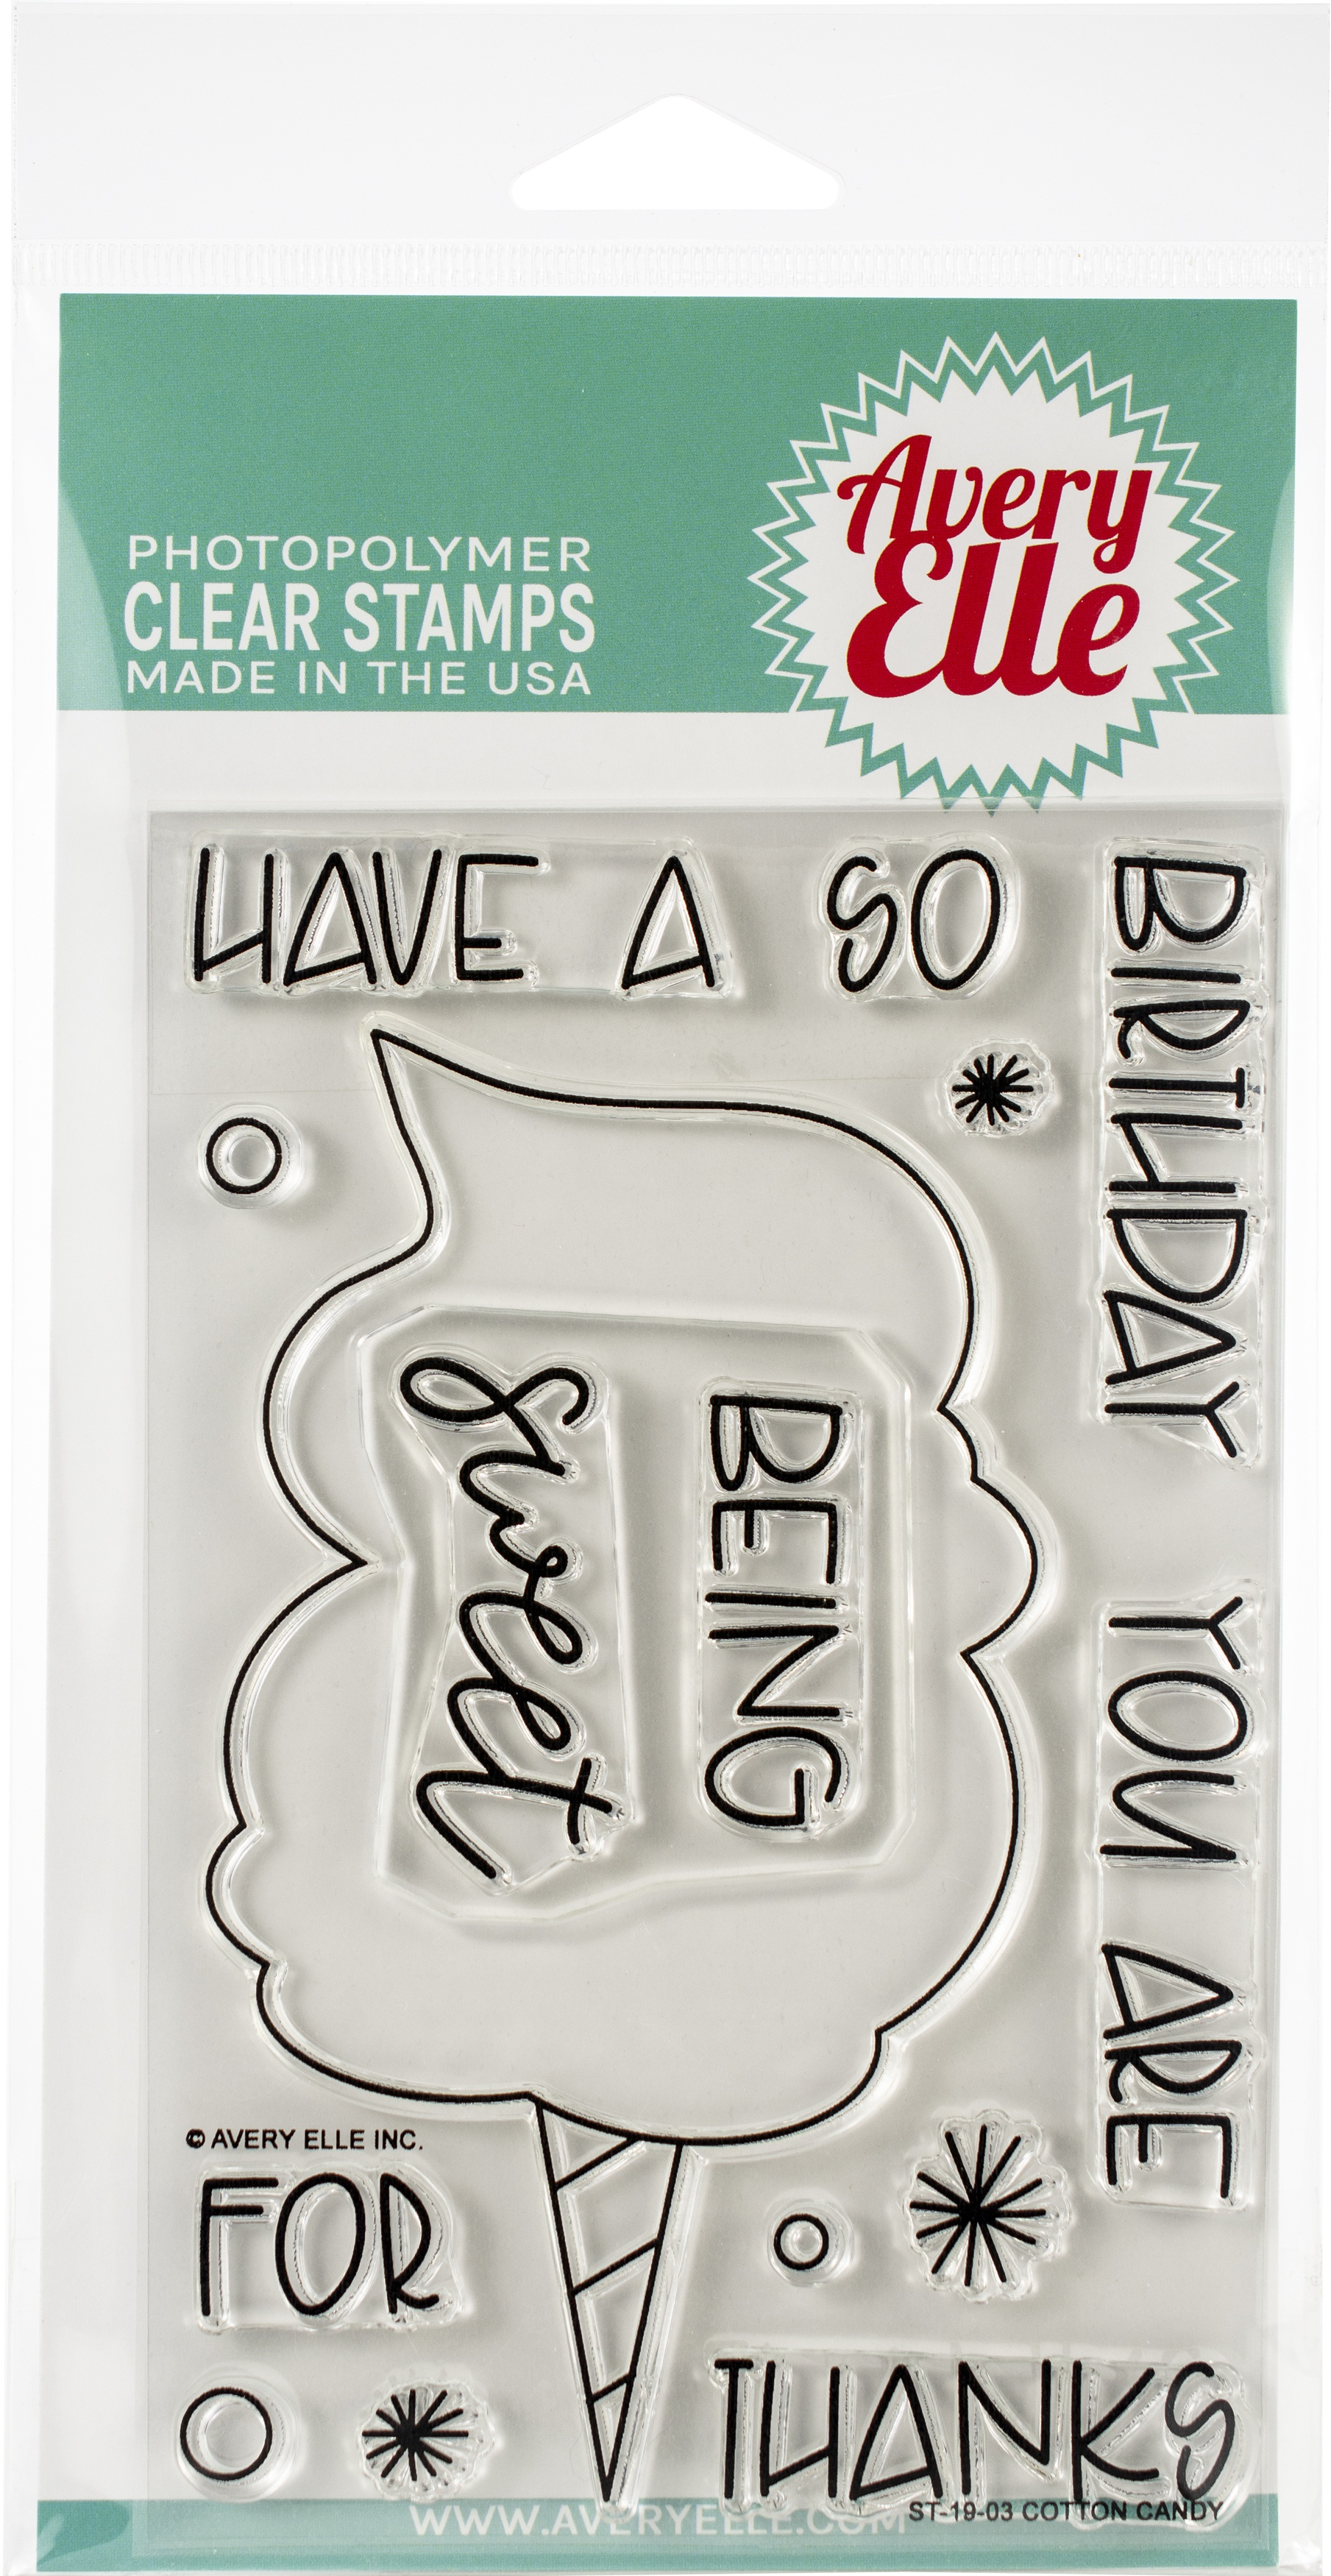 Avery Elle Clear Stamp Set 4X6-Cotton Candy